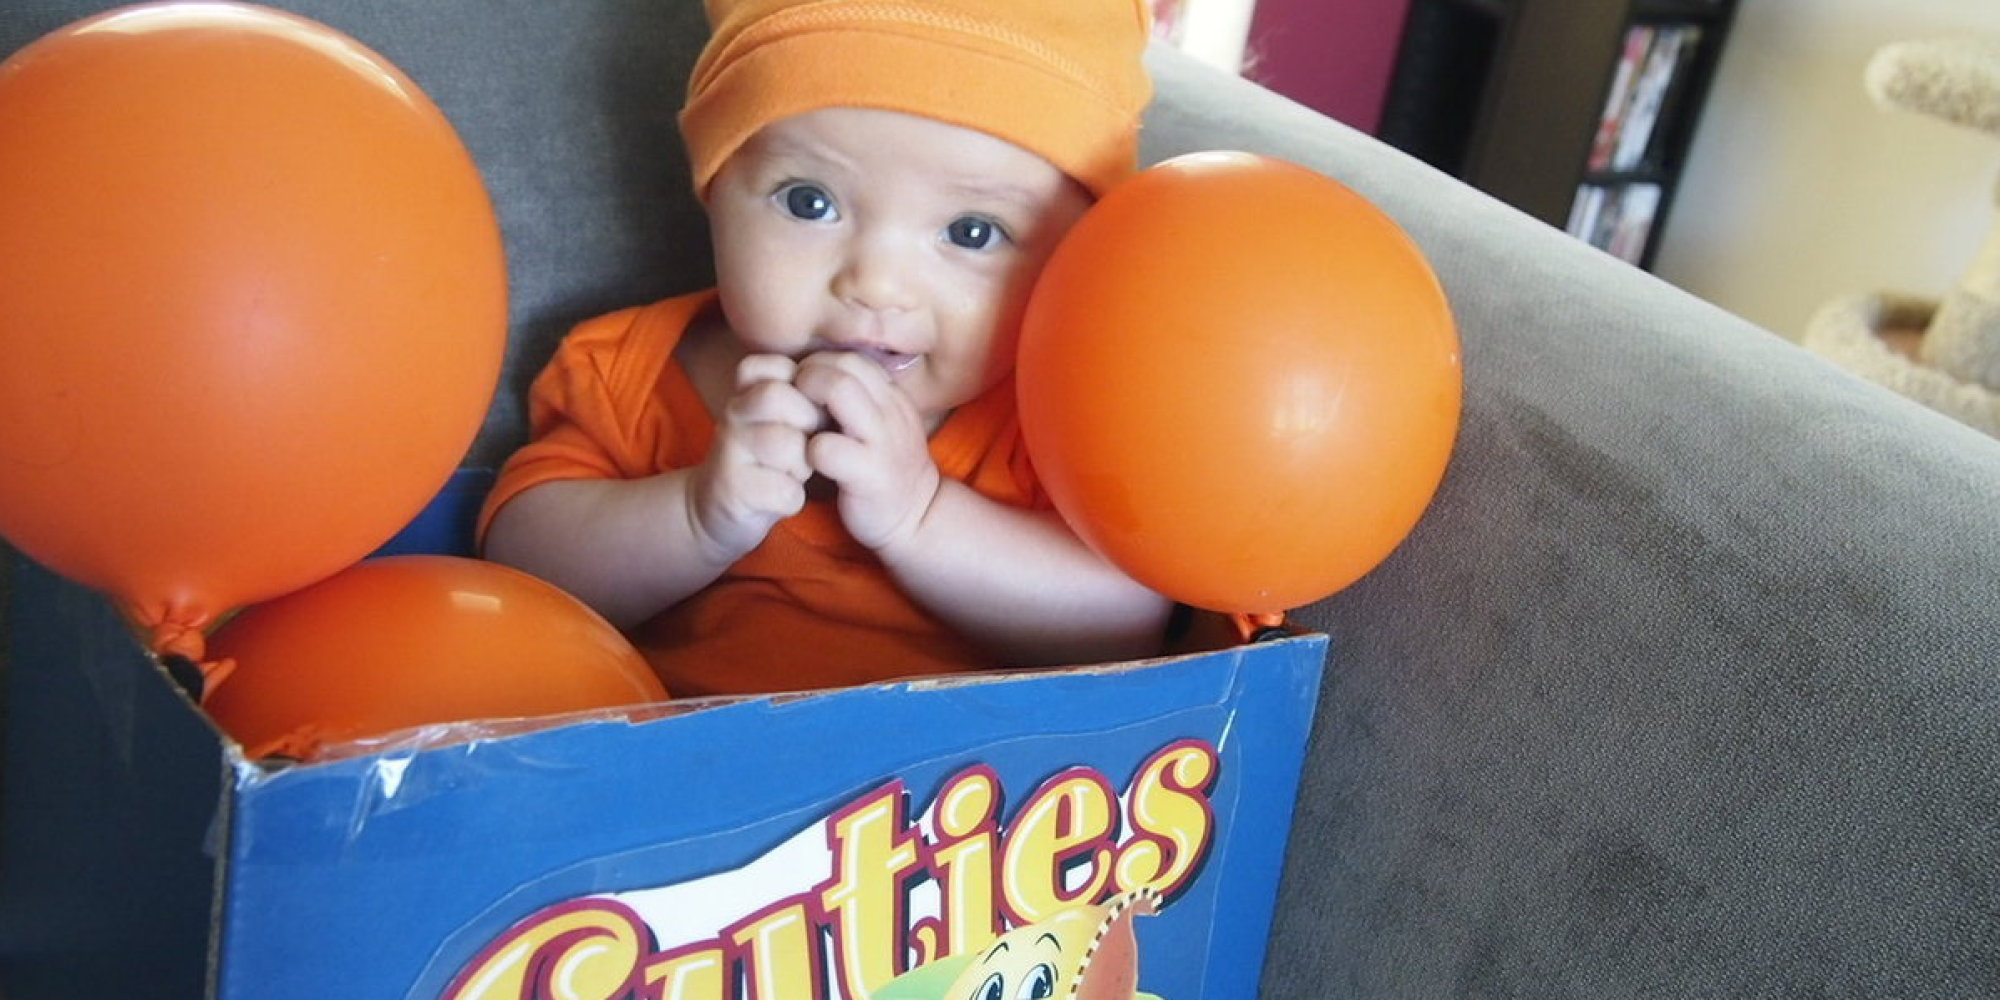 34 adorable baby halloween costumes the whole world needs to see huffpost - Baby Halloween Coatumes